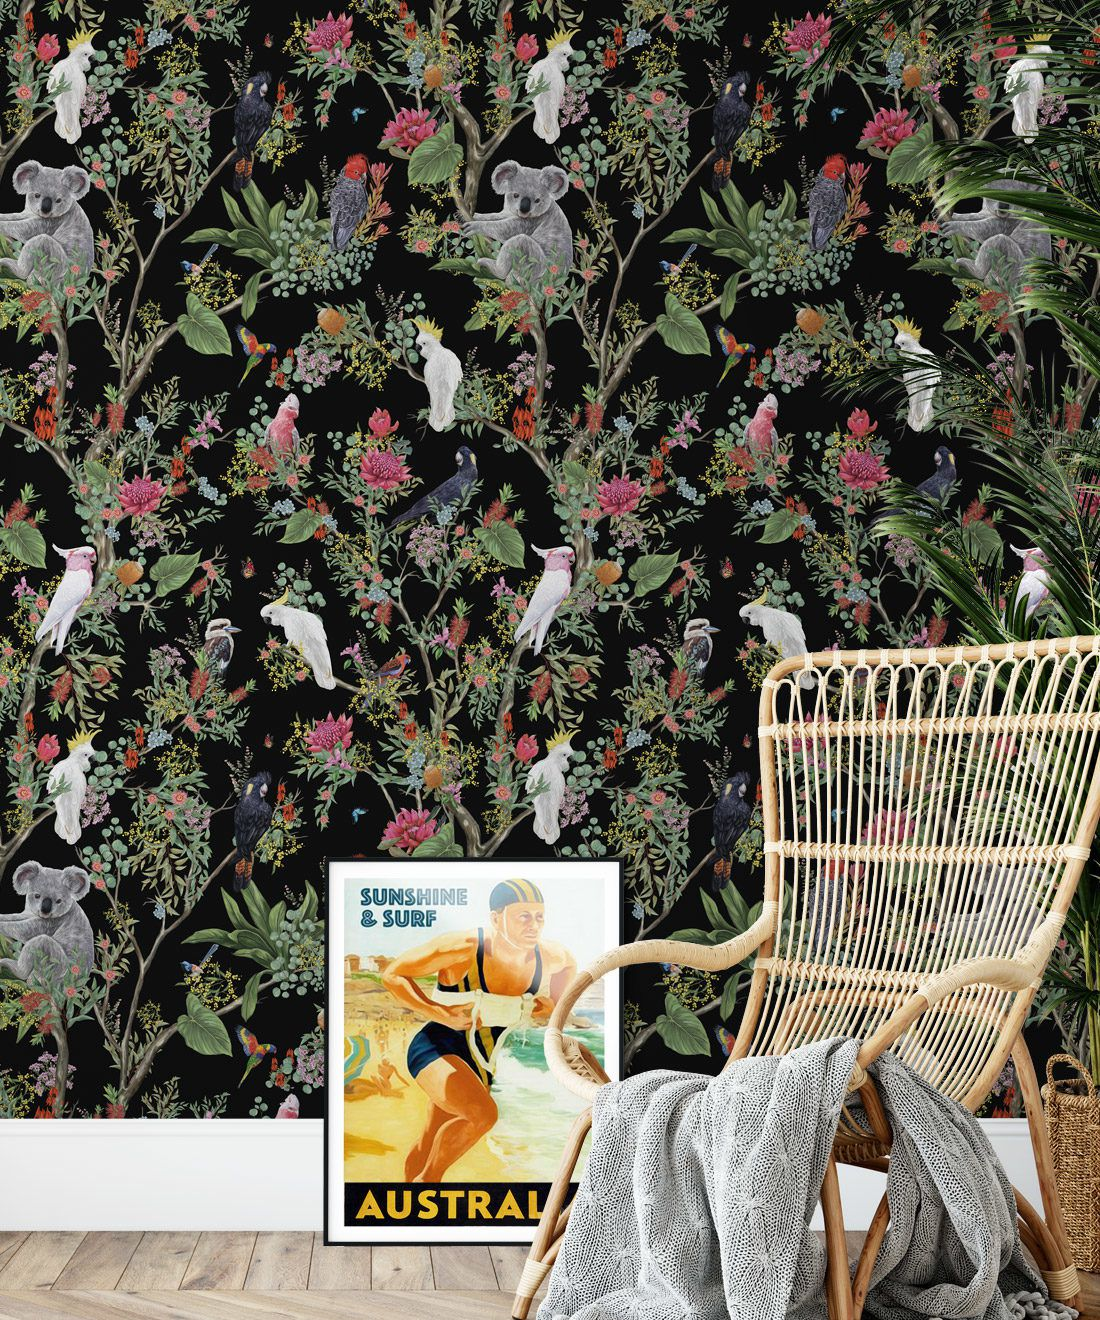 Australia Wallpaper • Cockatoos, Koalas, Parrots, Finches • Milton & King USA • Black Wallpaper Insitu